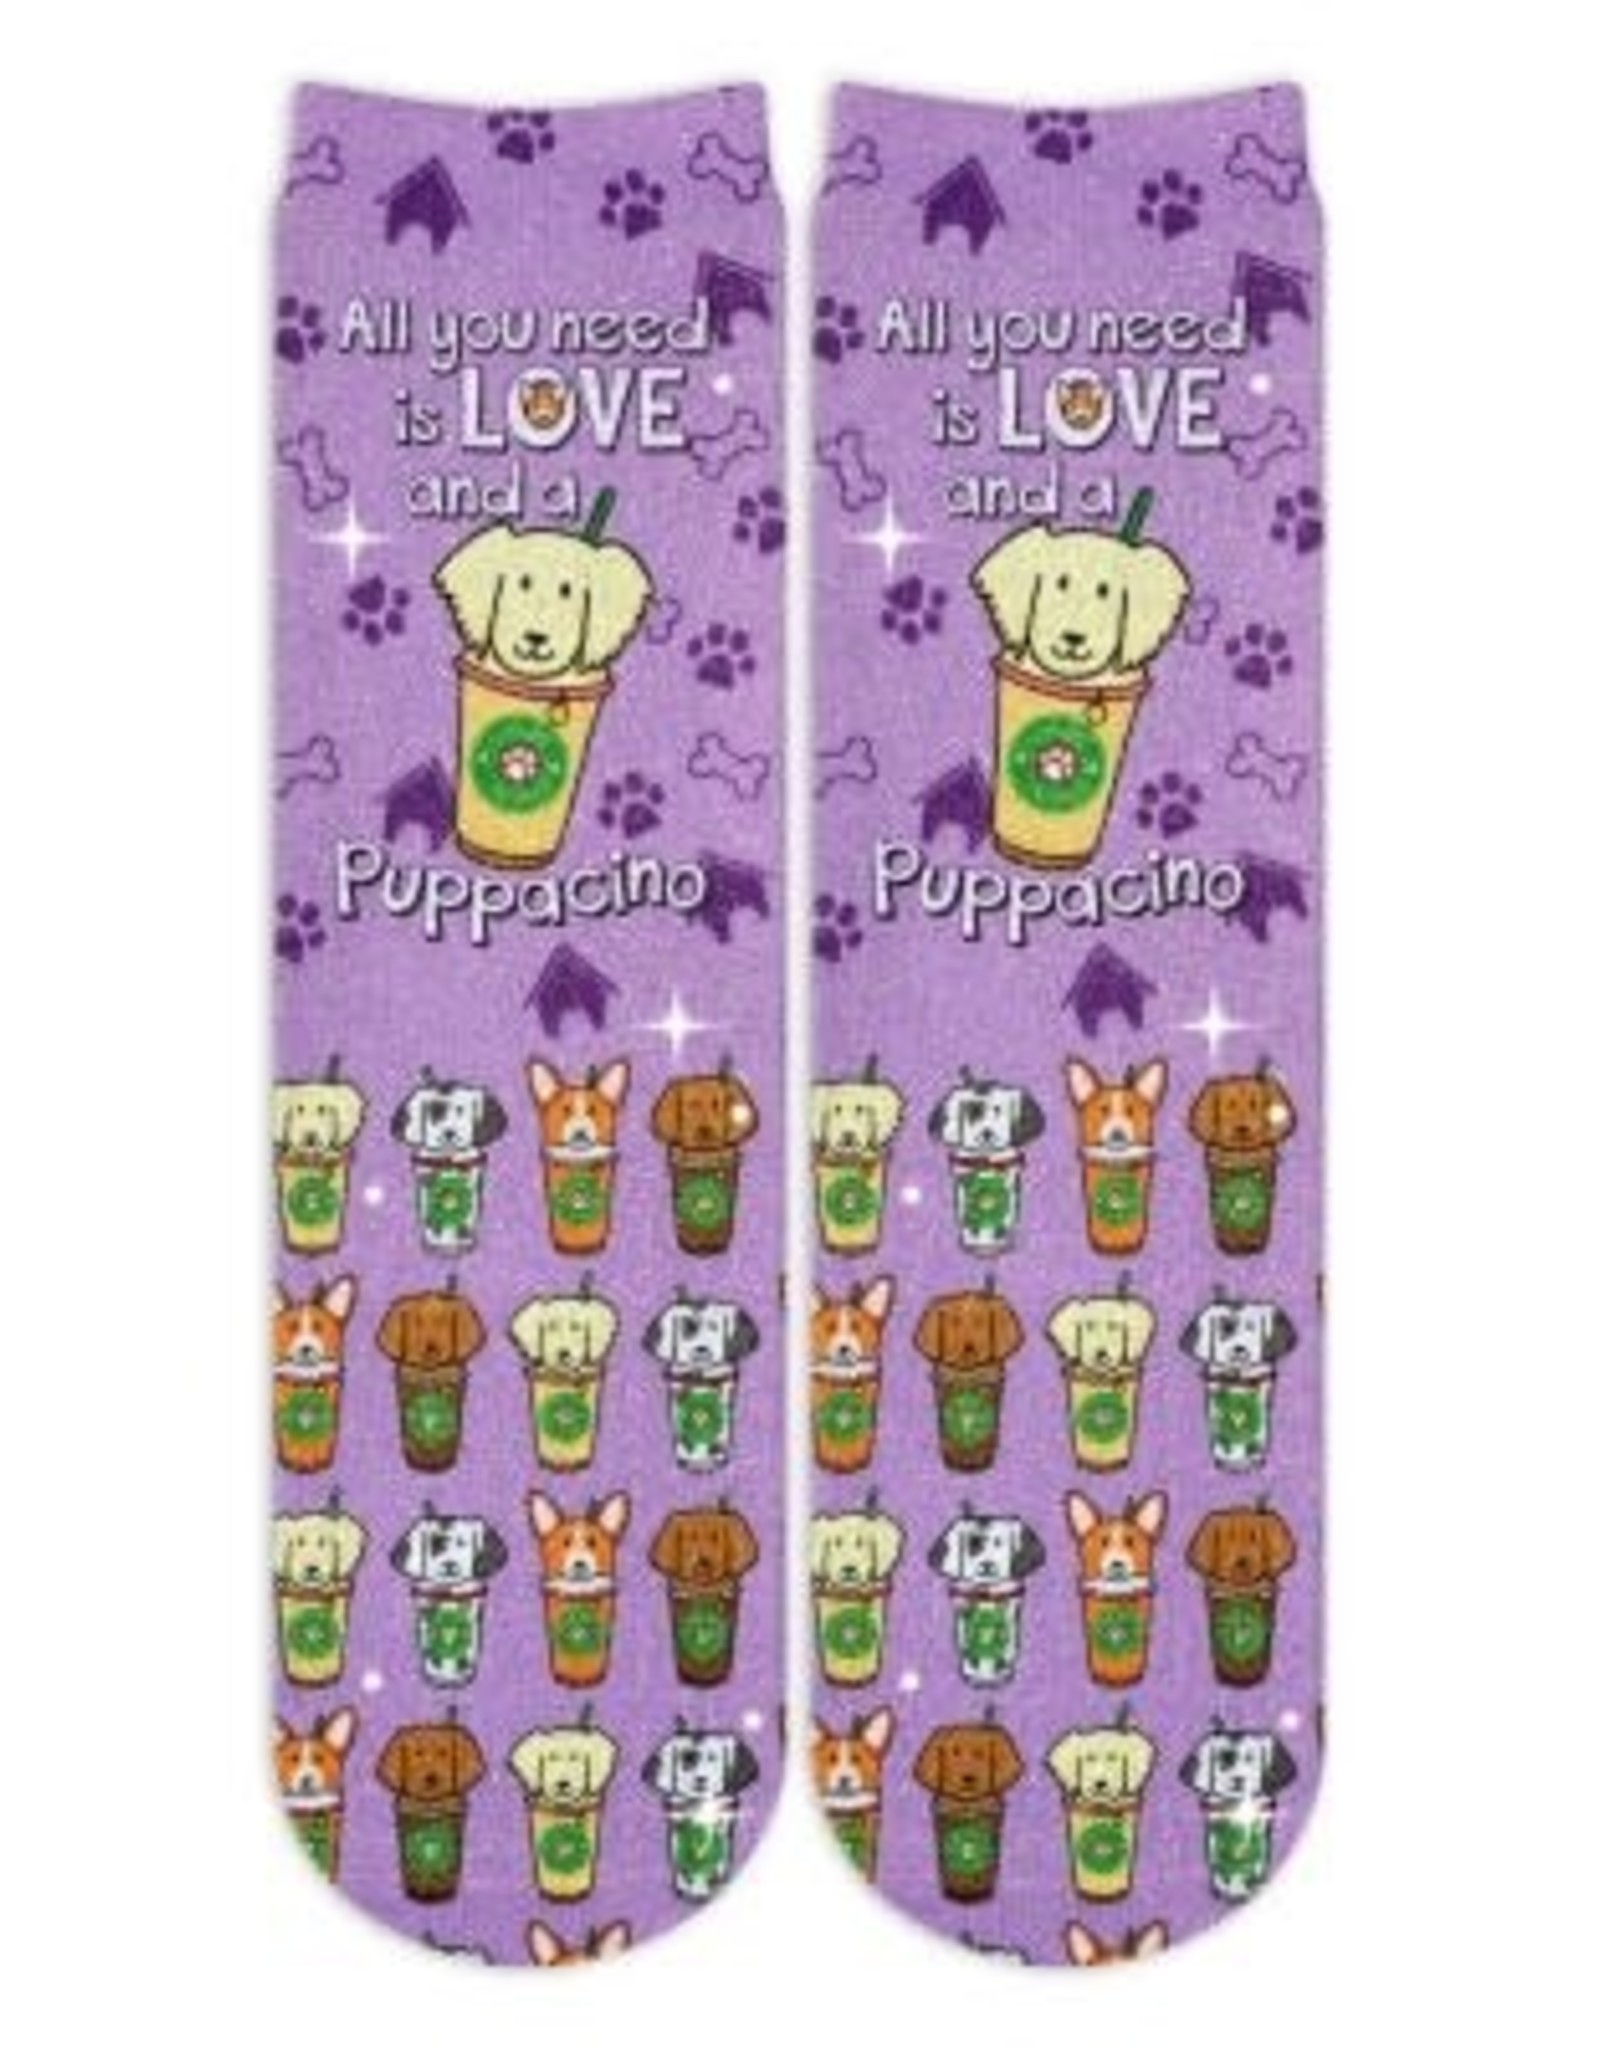 Sublime Designs Puppacino Shimmer Socks(PCO) Shoe Size 6-12